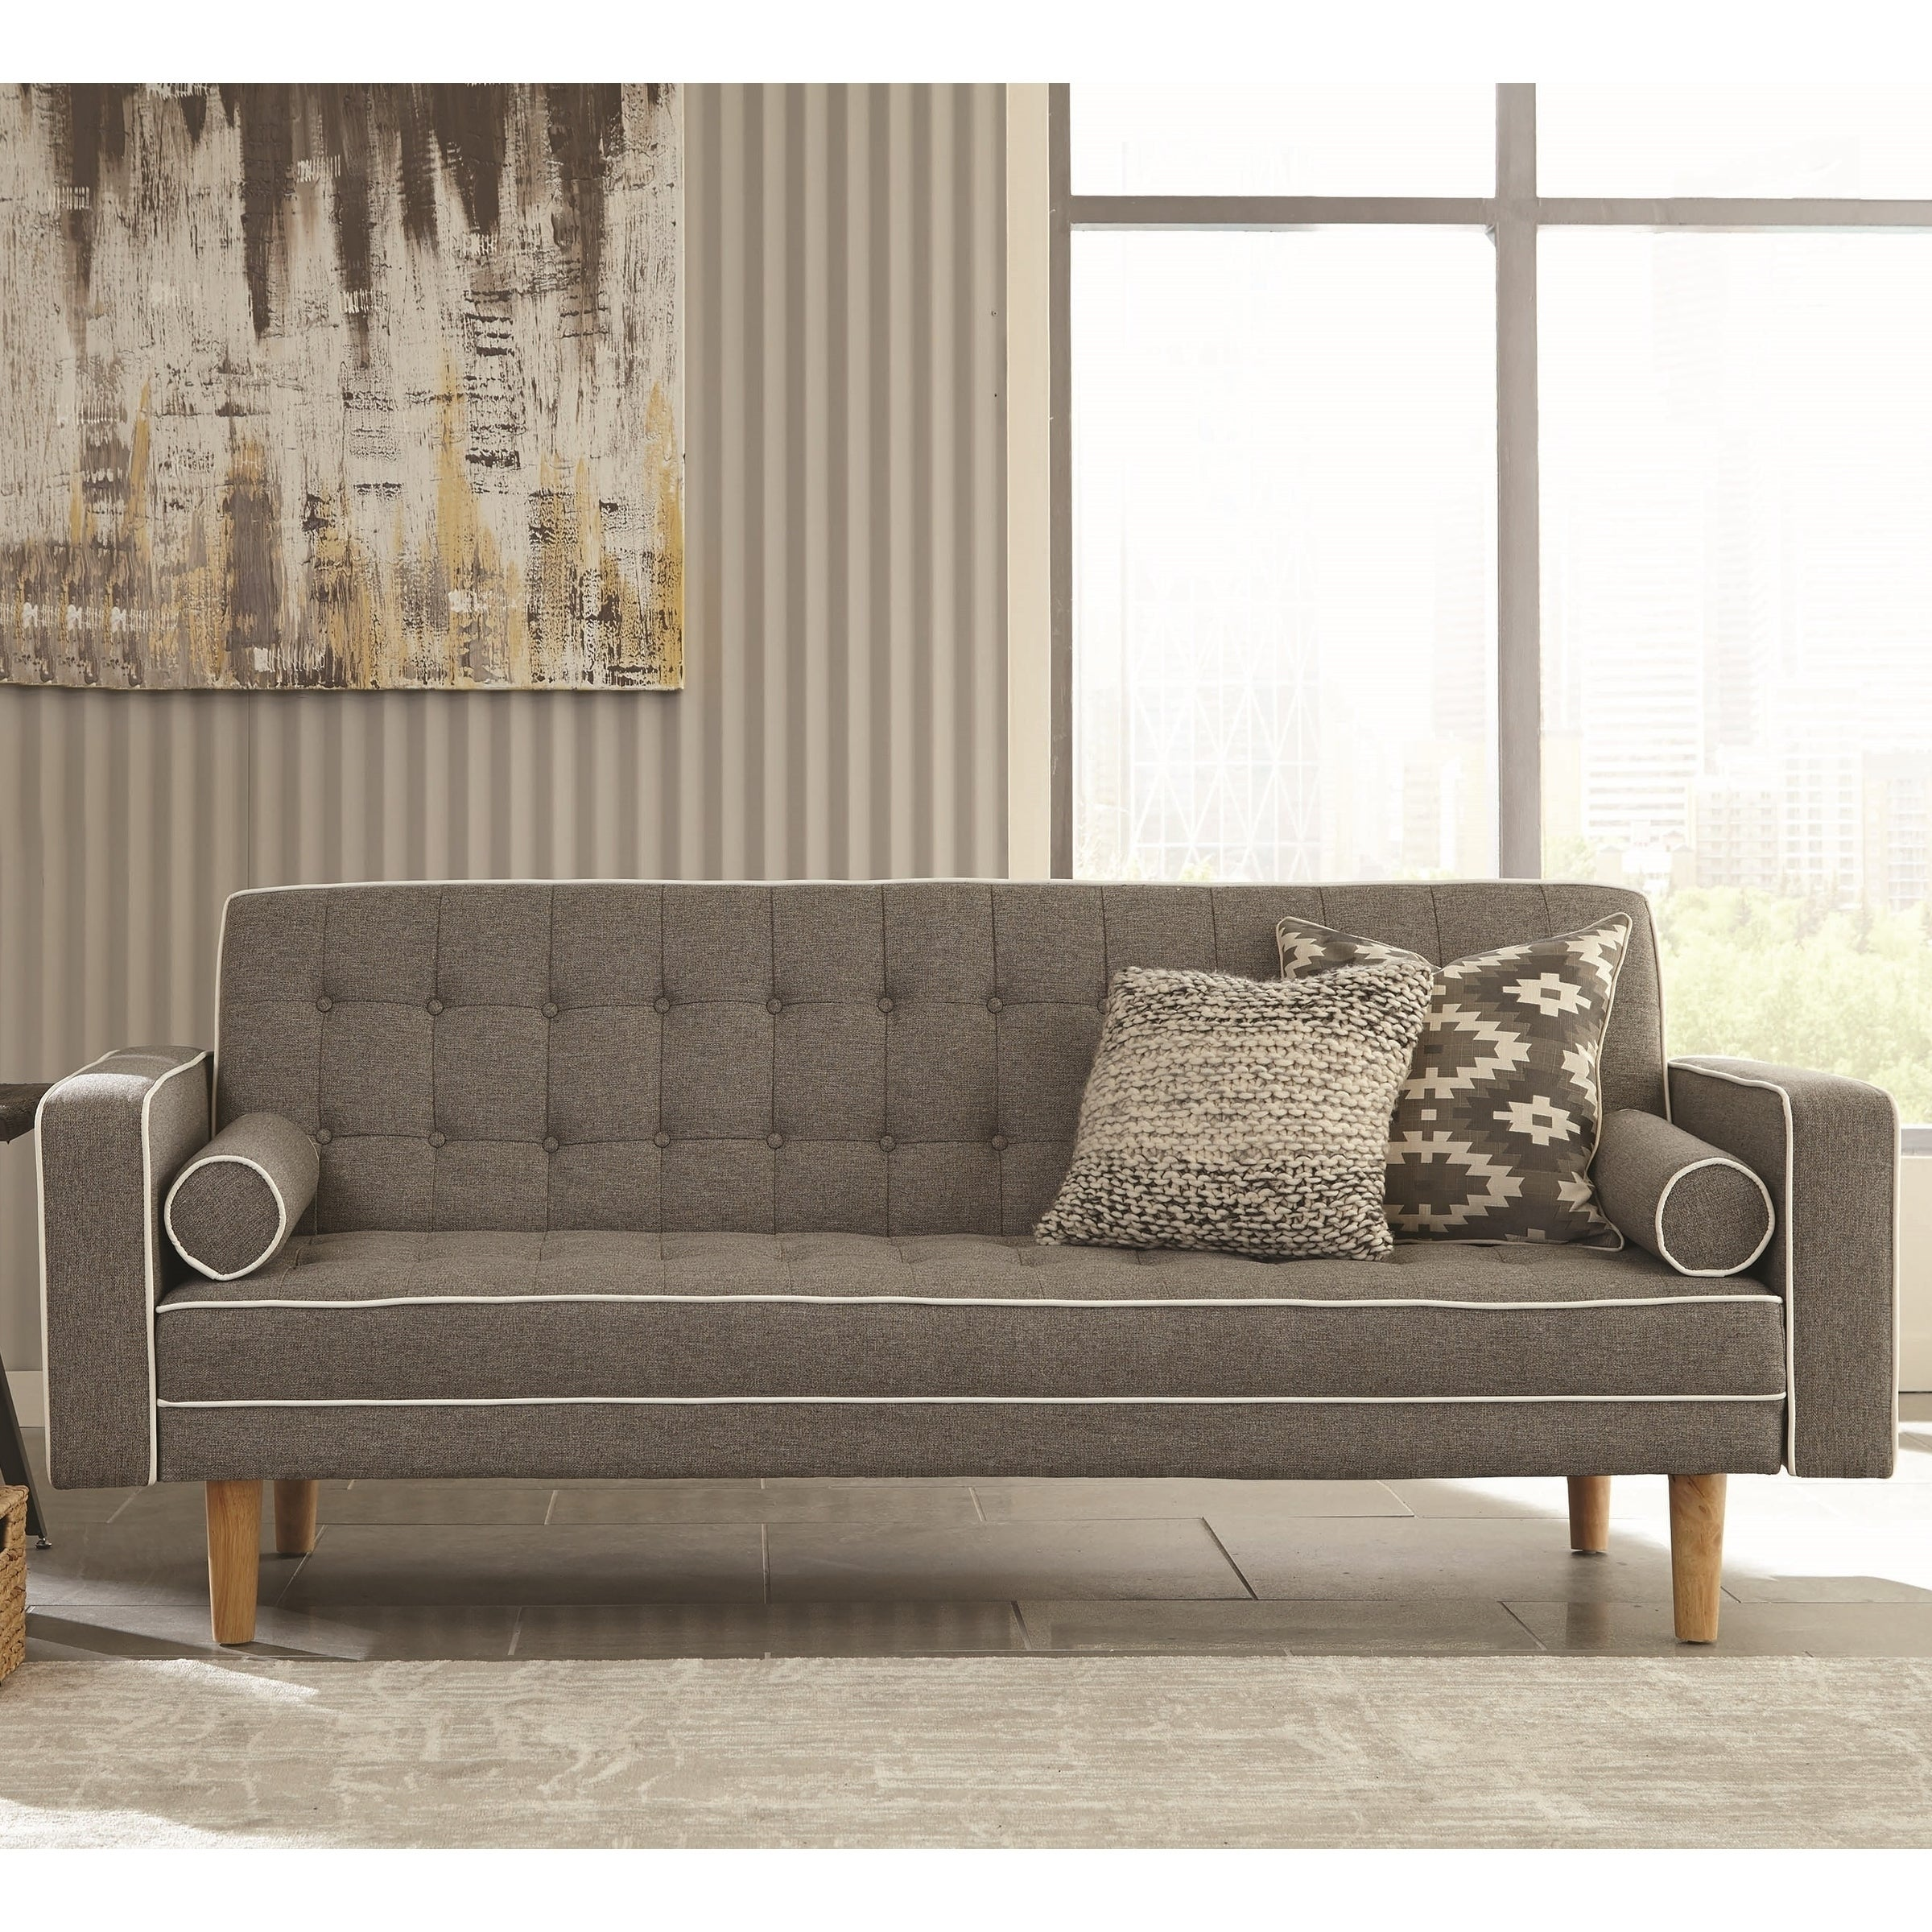 Modern Design Grey Button Tufted Sofa Bed Sleeper with White Piping